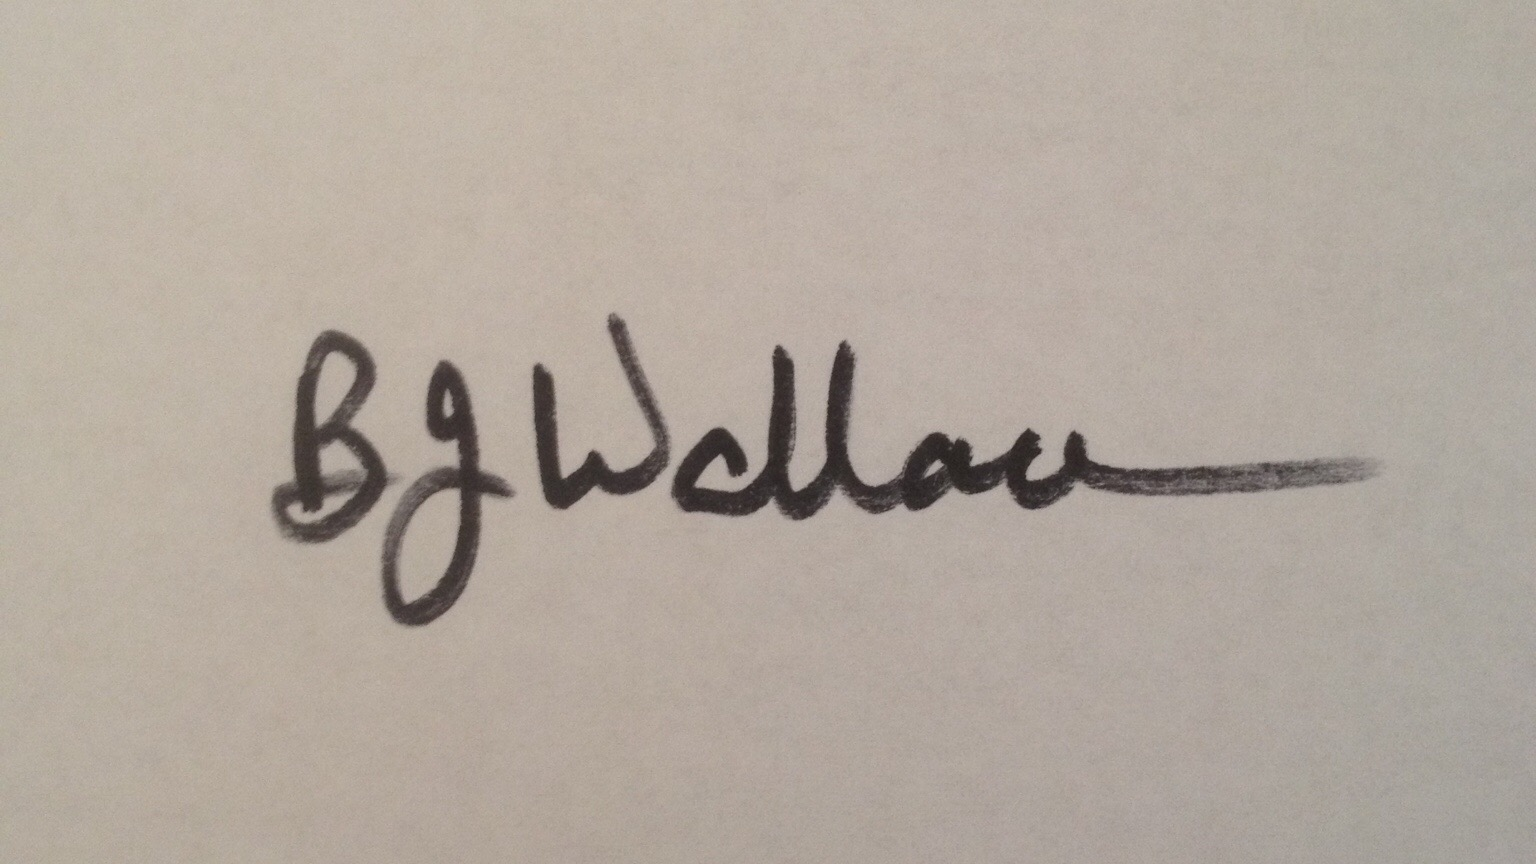 Barbara Wallace's Signature